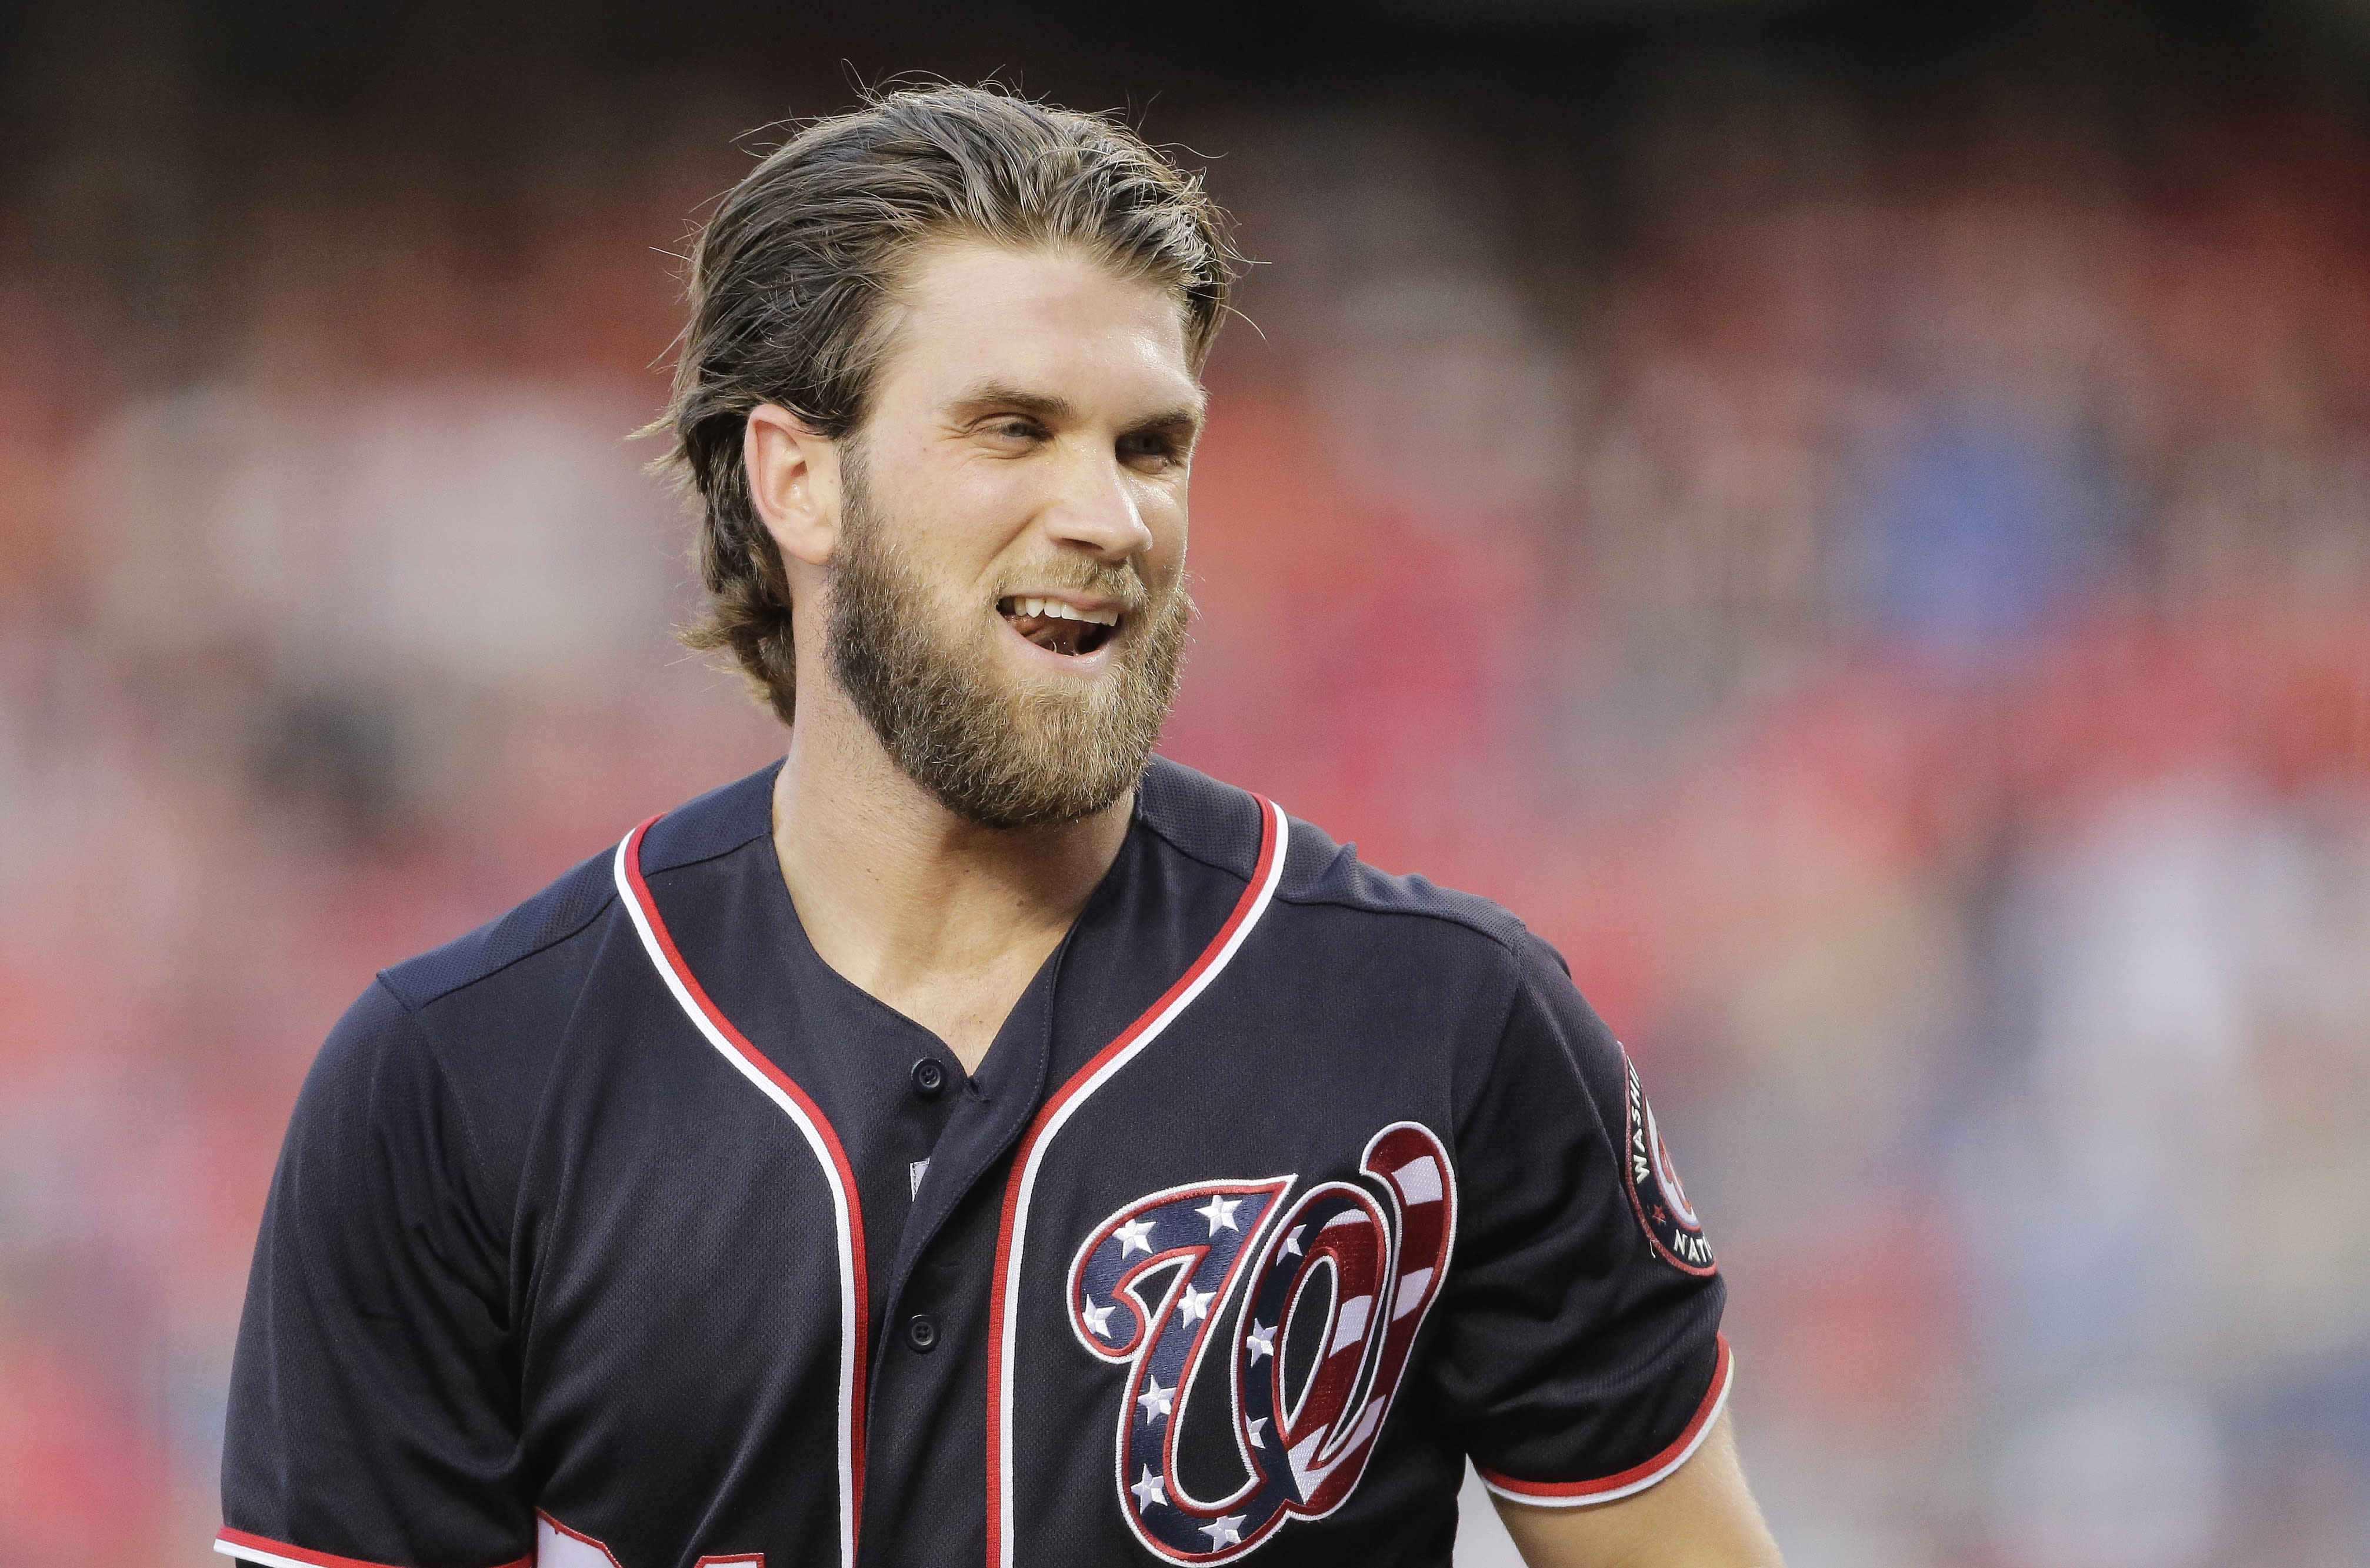 Bryce Harper The Favorite To Win Home Run Derby